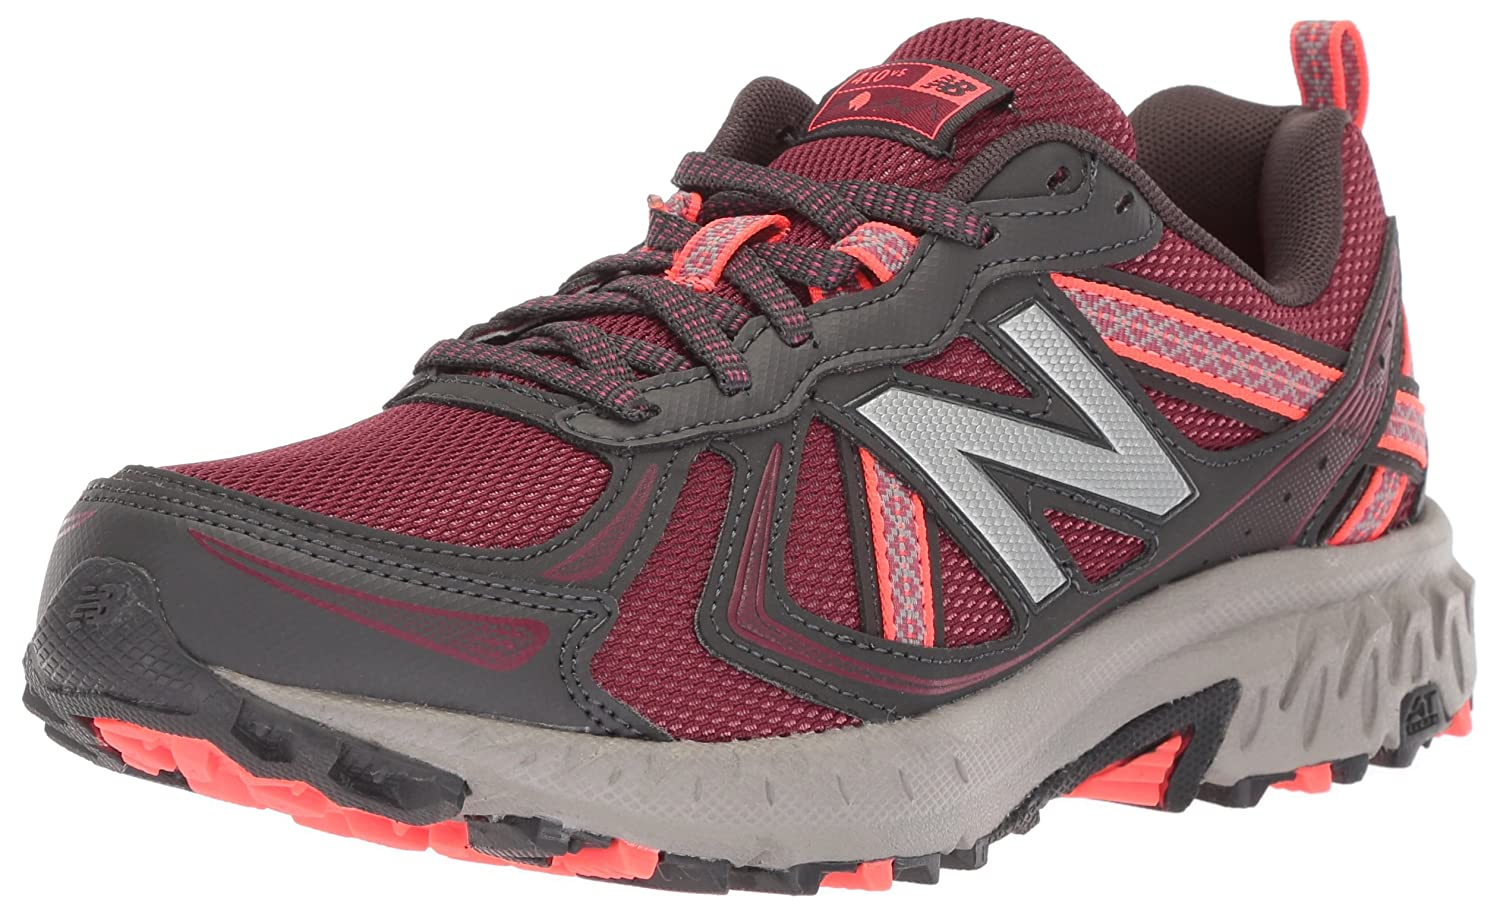 New Balance Women's WT410v5 Cushioning Trail Running Shoe B0751SG76N 10.5 D US|Vortex